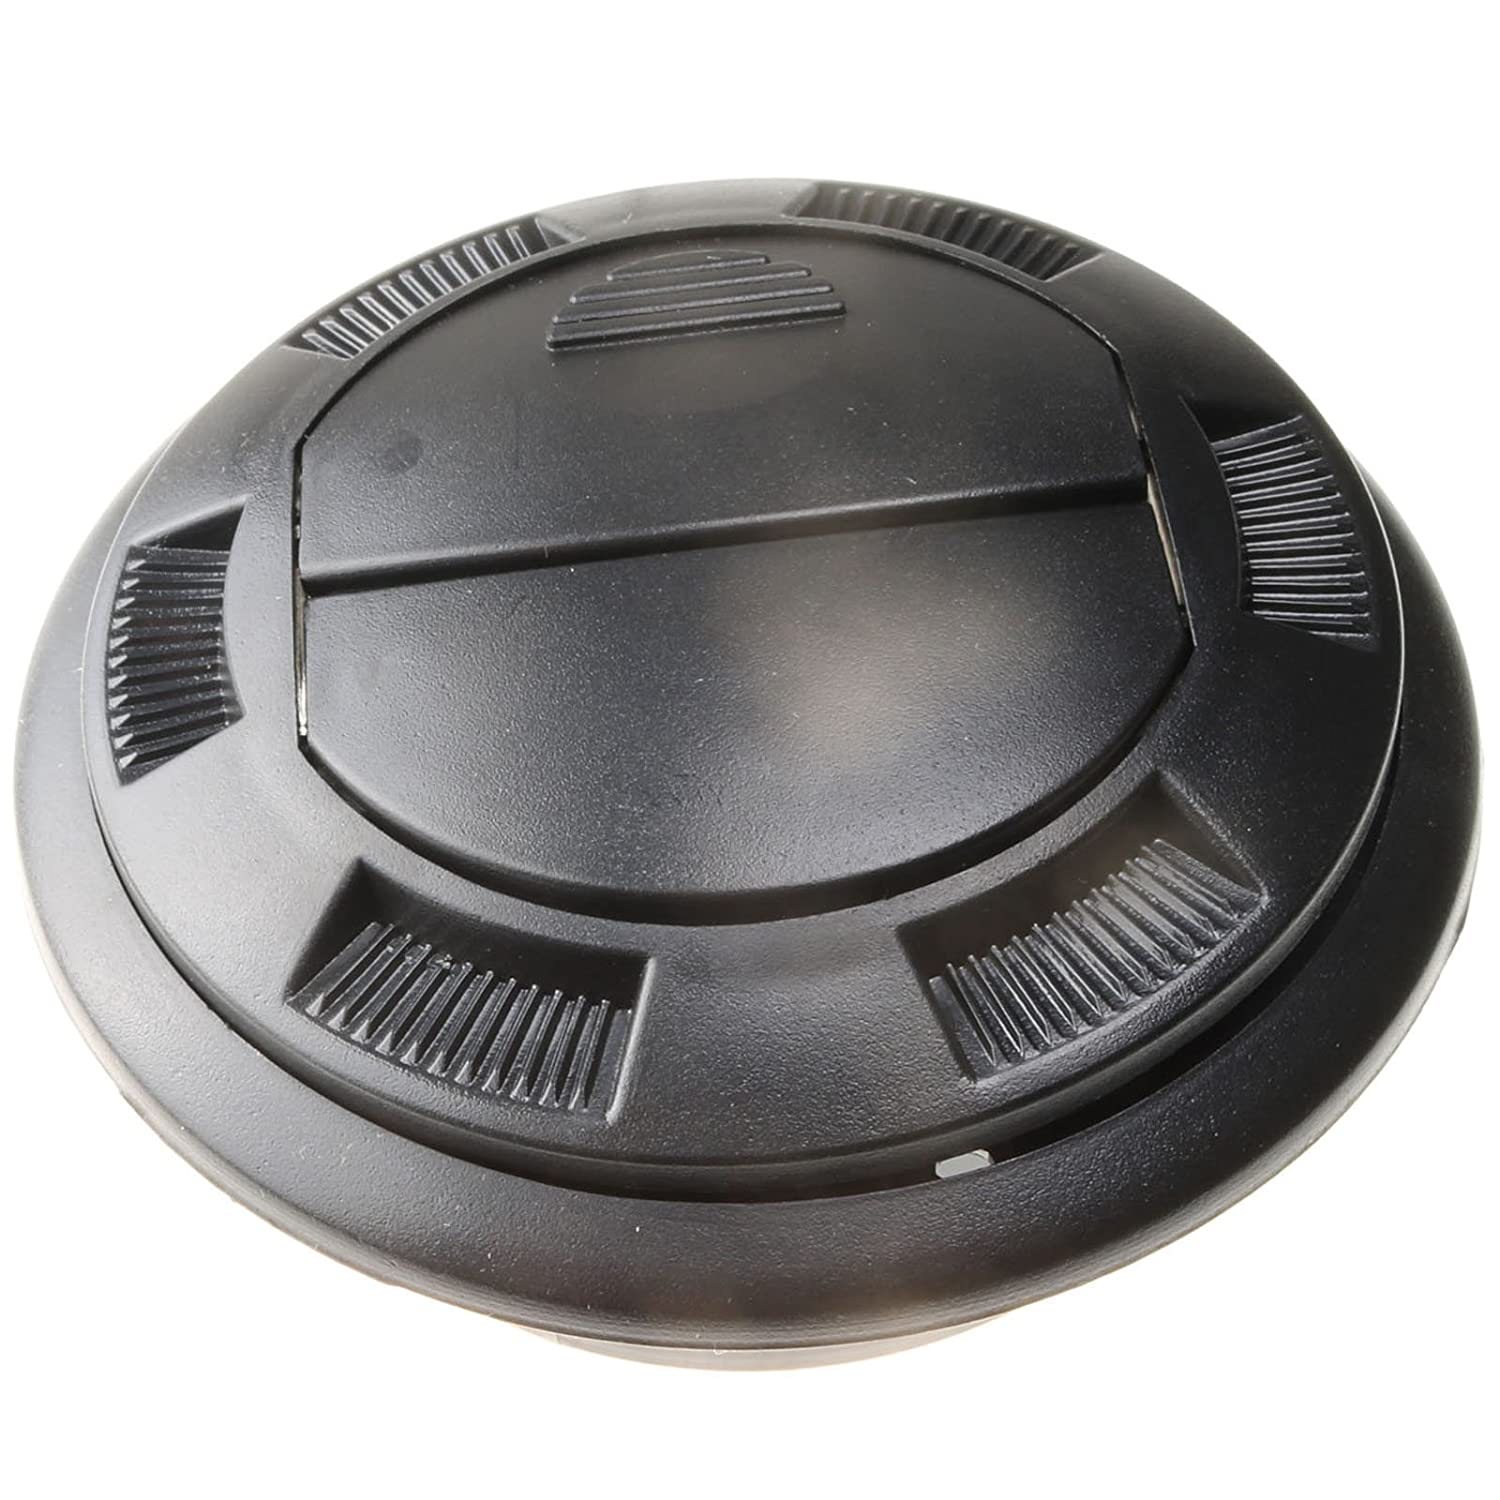 Holdwell Cab Heater Vent Cover Louver 6674231 Heater Cab Round Vent for Bobcat Skid Steer Loader 320 322 323 5600 5610 751 753 763 773 863 864 873 883 963 A220 A300 S100 S130 S150 S160 S175 SS185